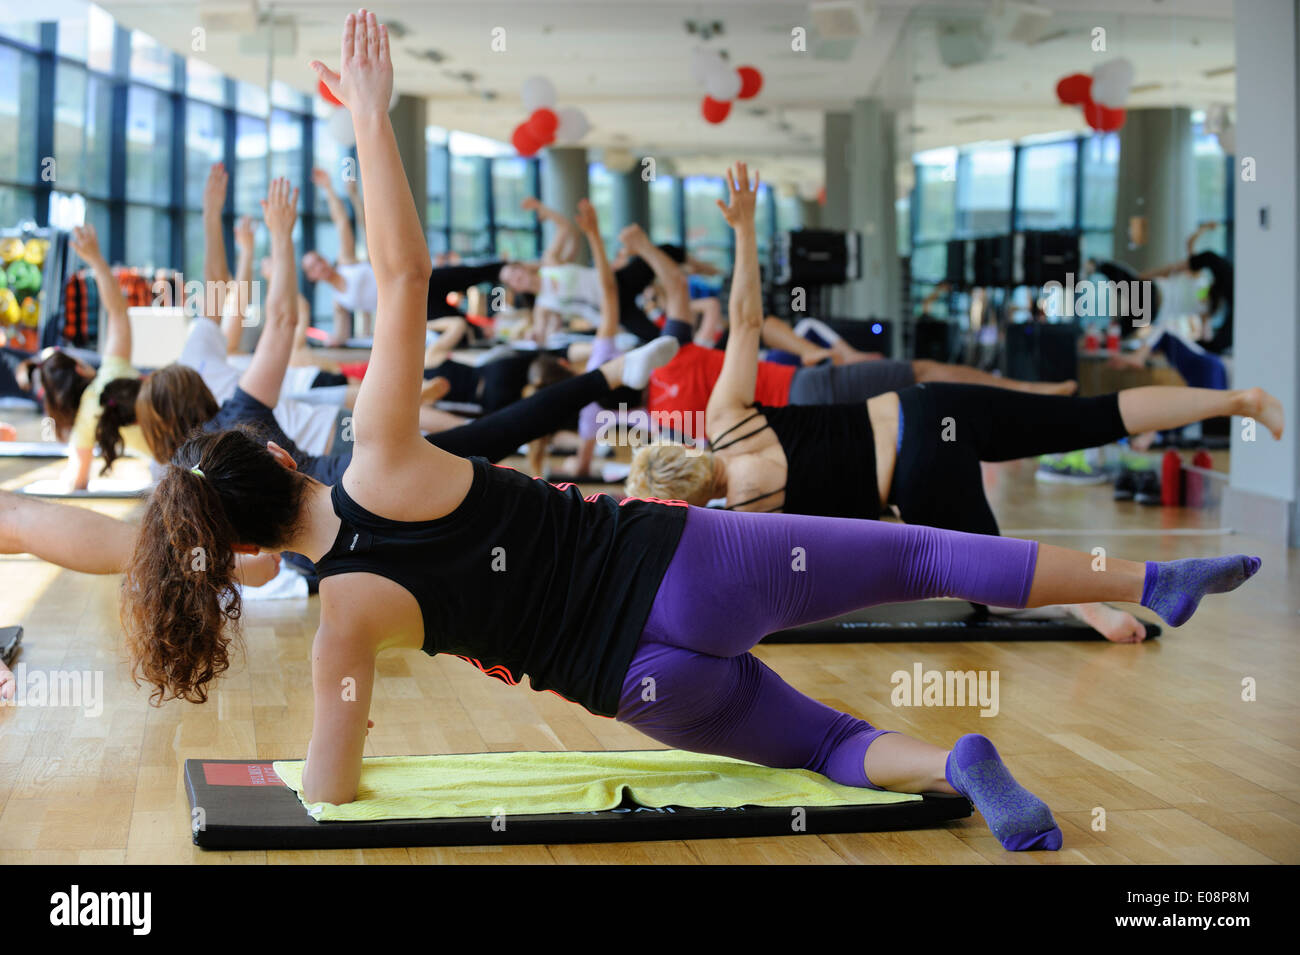 Woman doing side plank during a fitness class at the gym - Stock Image